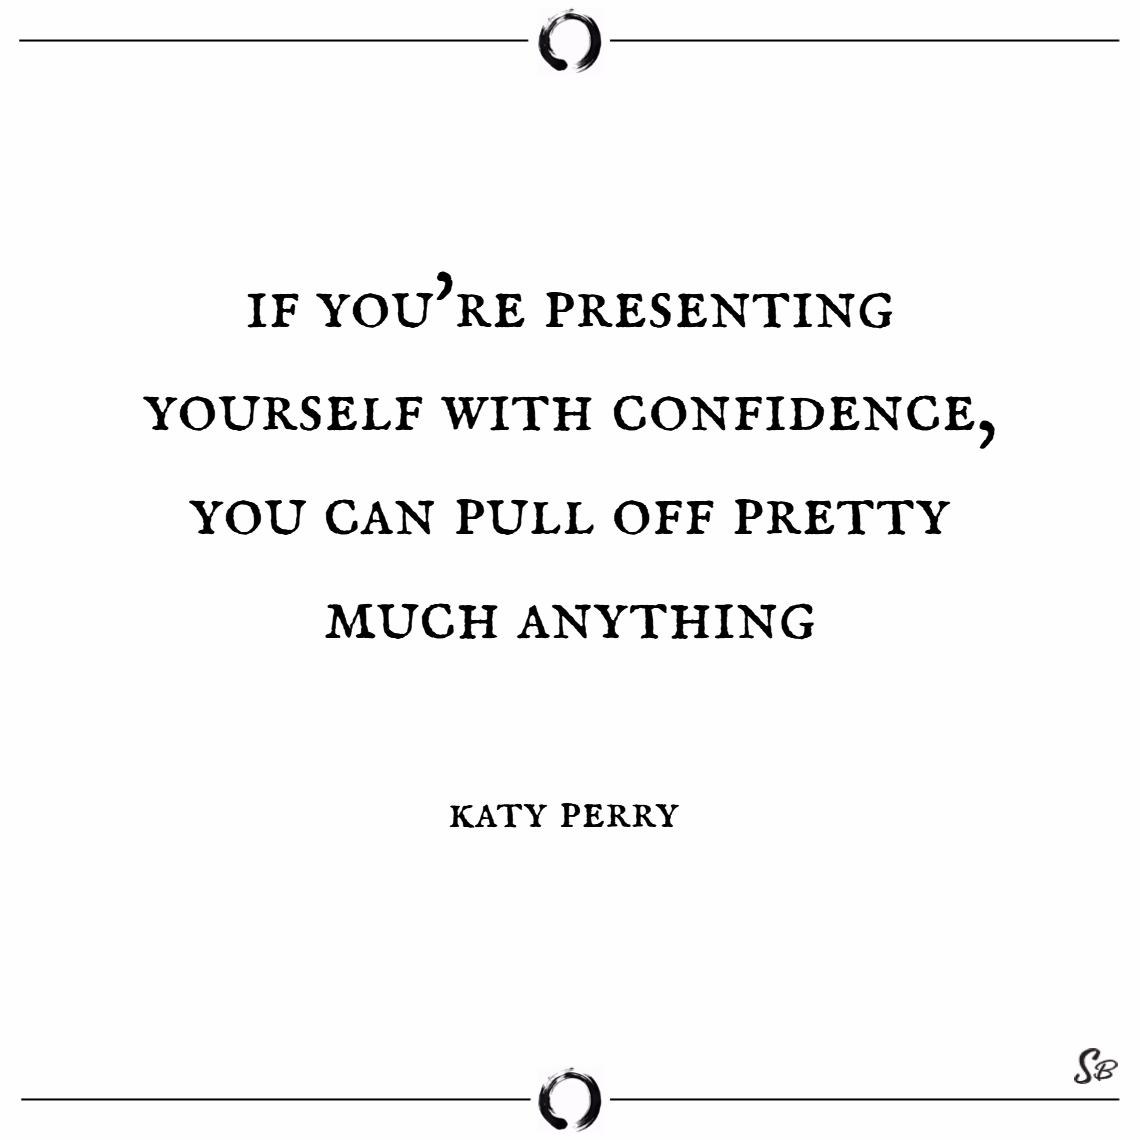 If you're presenting yourself with confidence, you can pull off pretty much anything. – katy perry